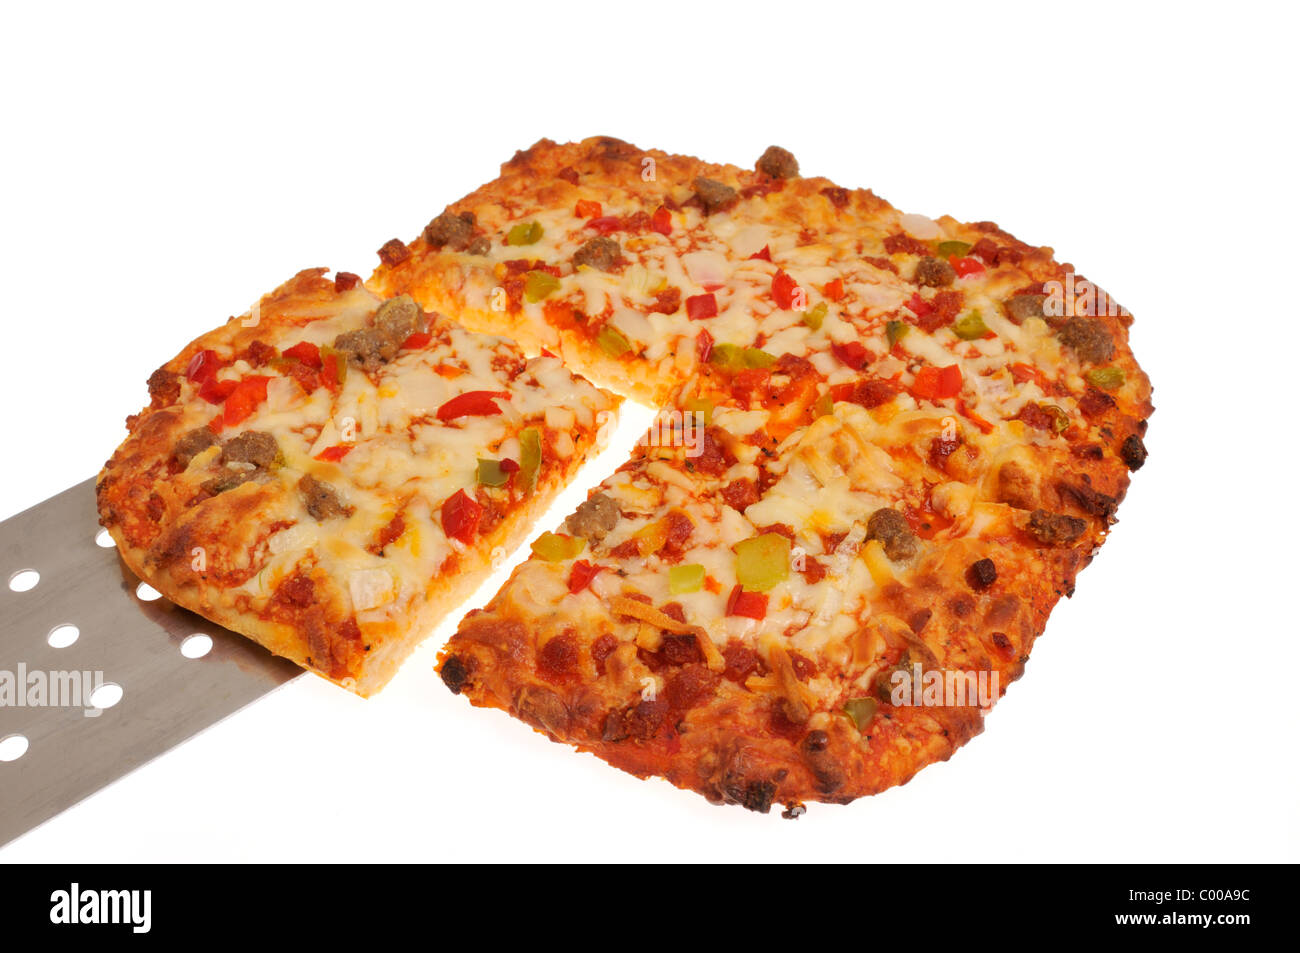 Square Pizza Slice Related Keywords & Suggestions - Square Pizza Slice ...